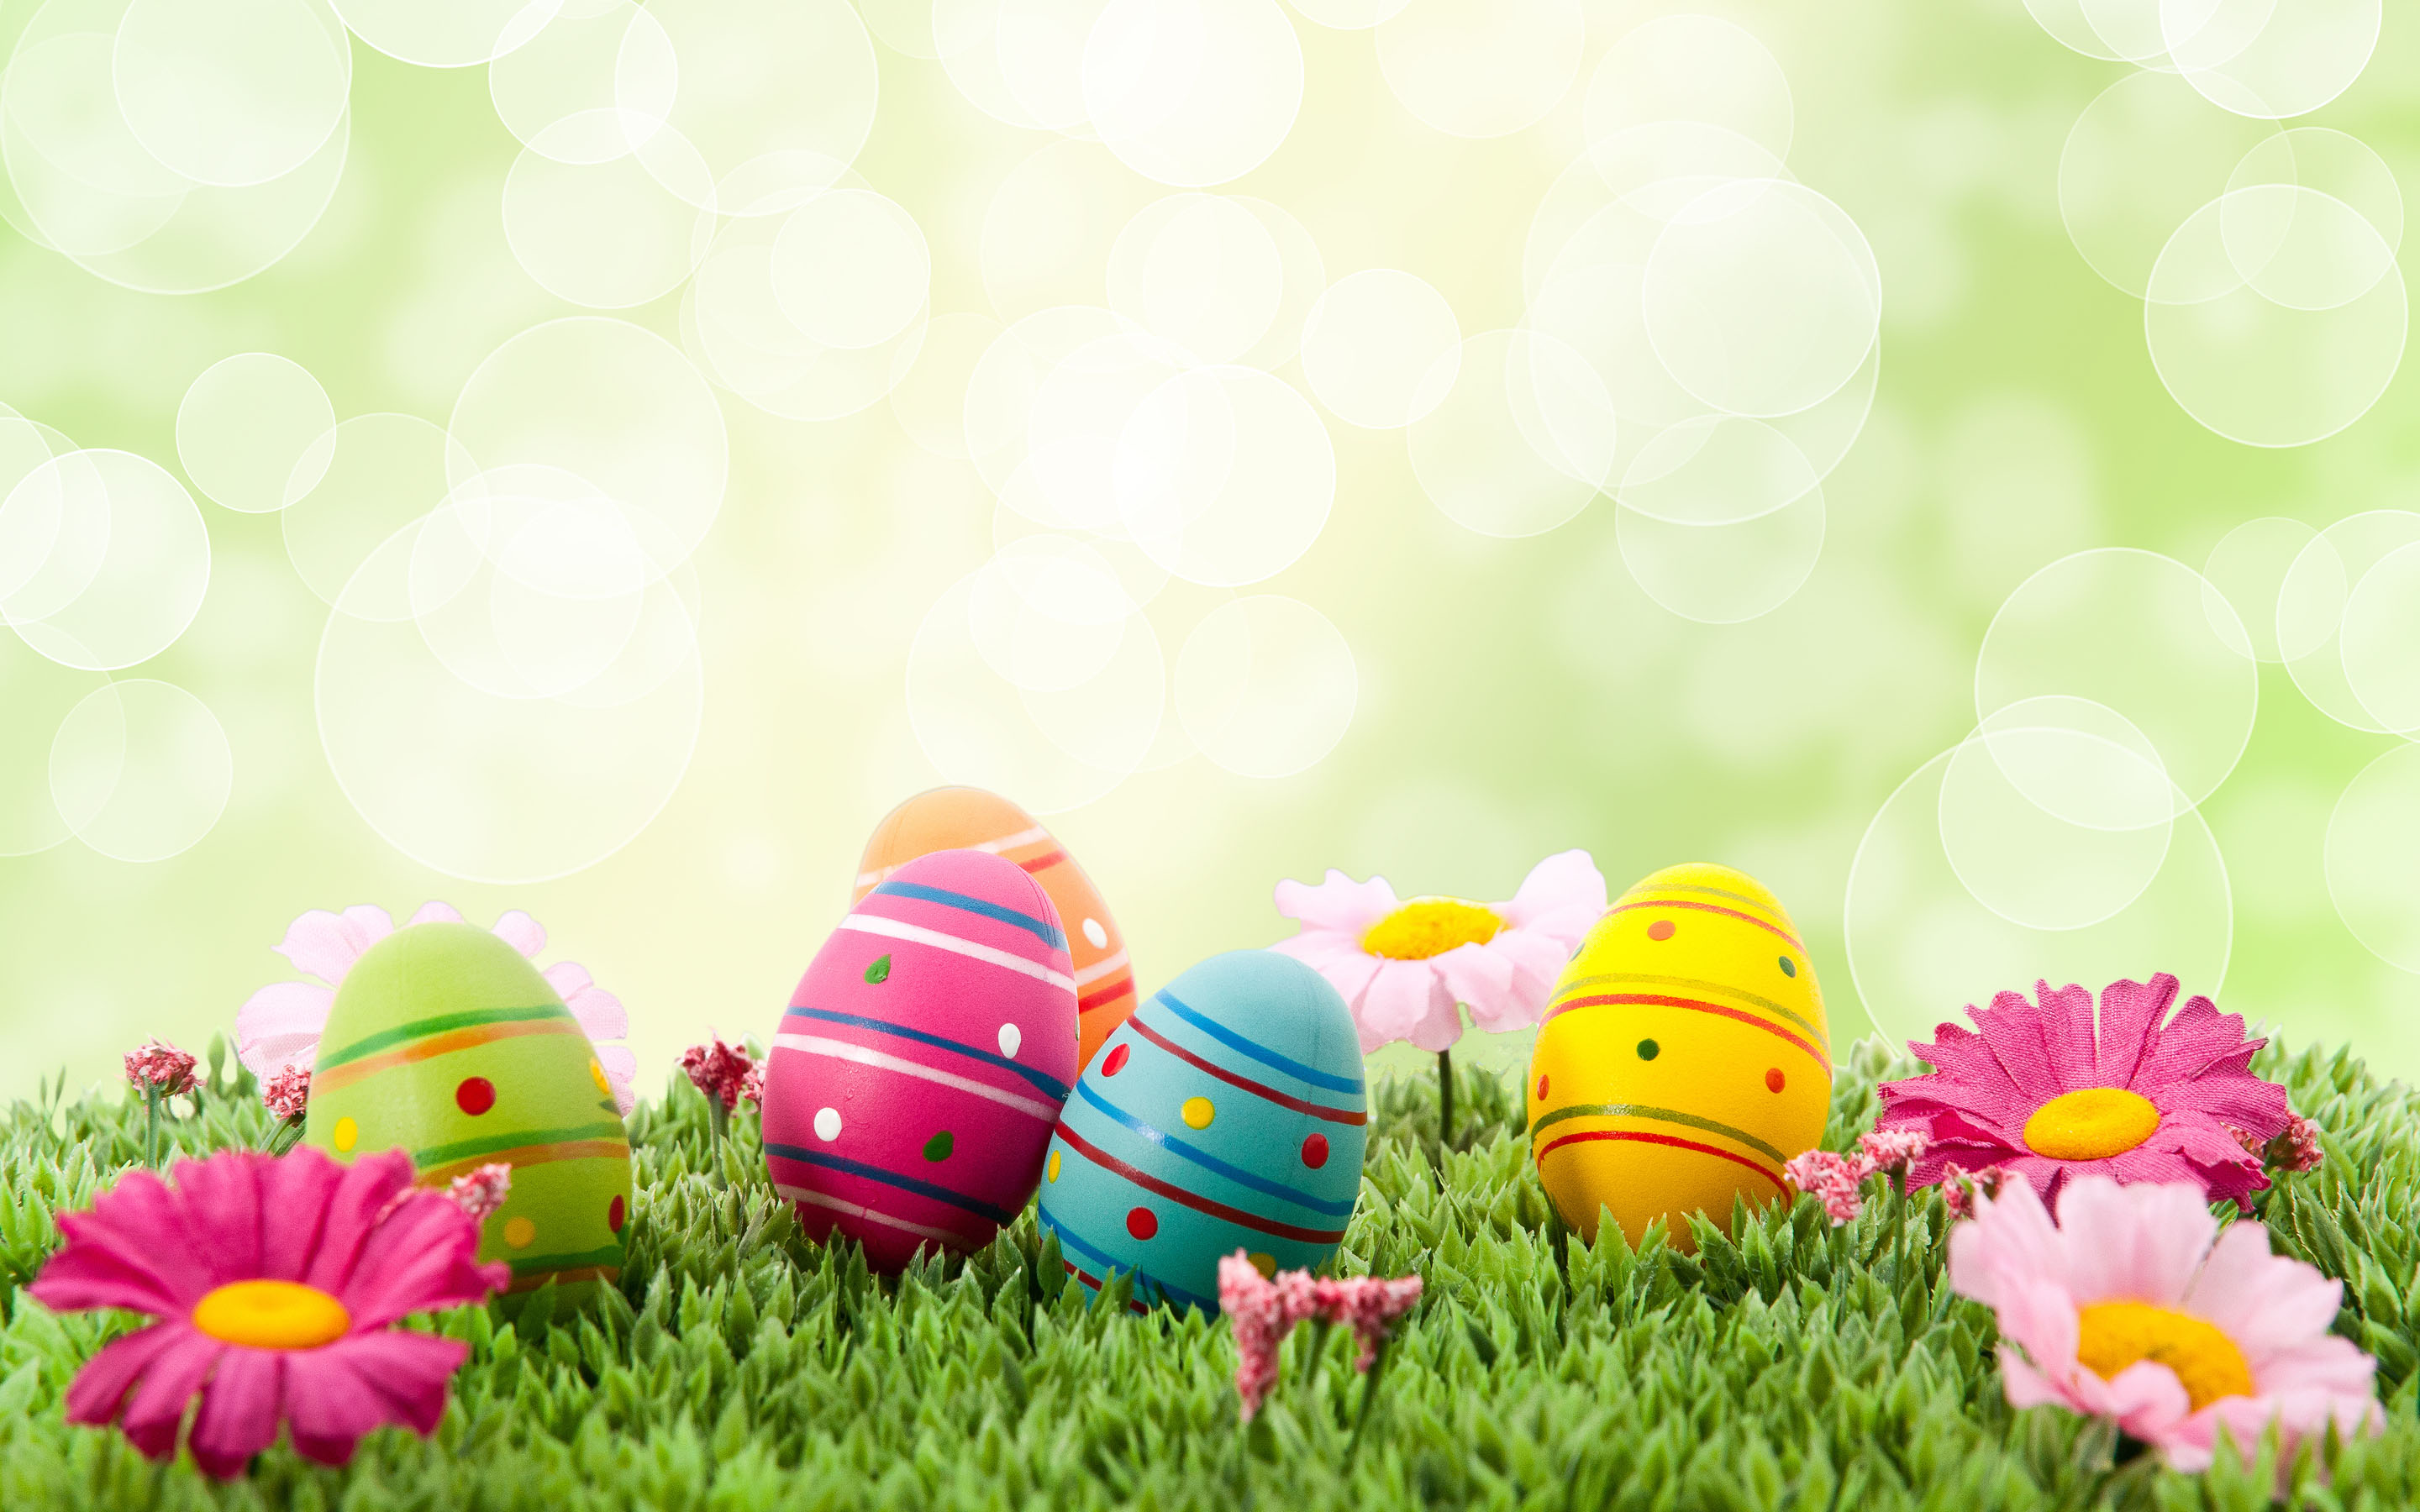 3D Happy Easter Wallpapers Screensaver HD for iPhone 2880x1800